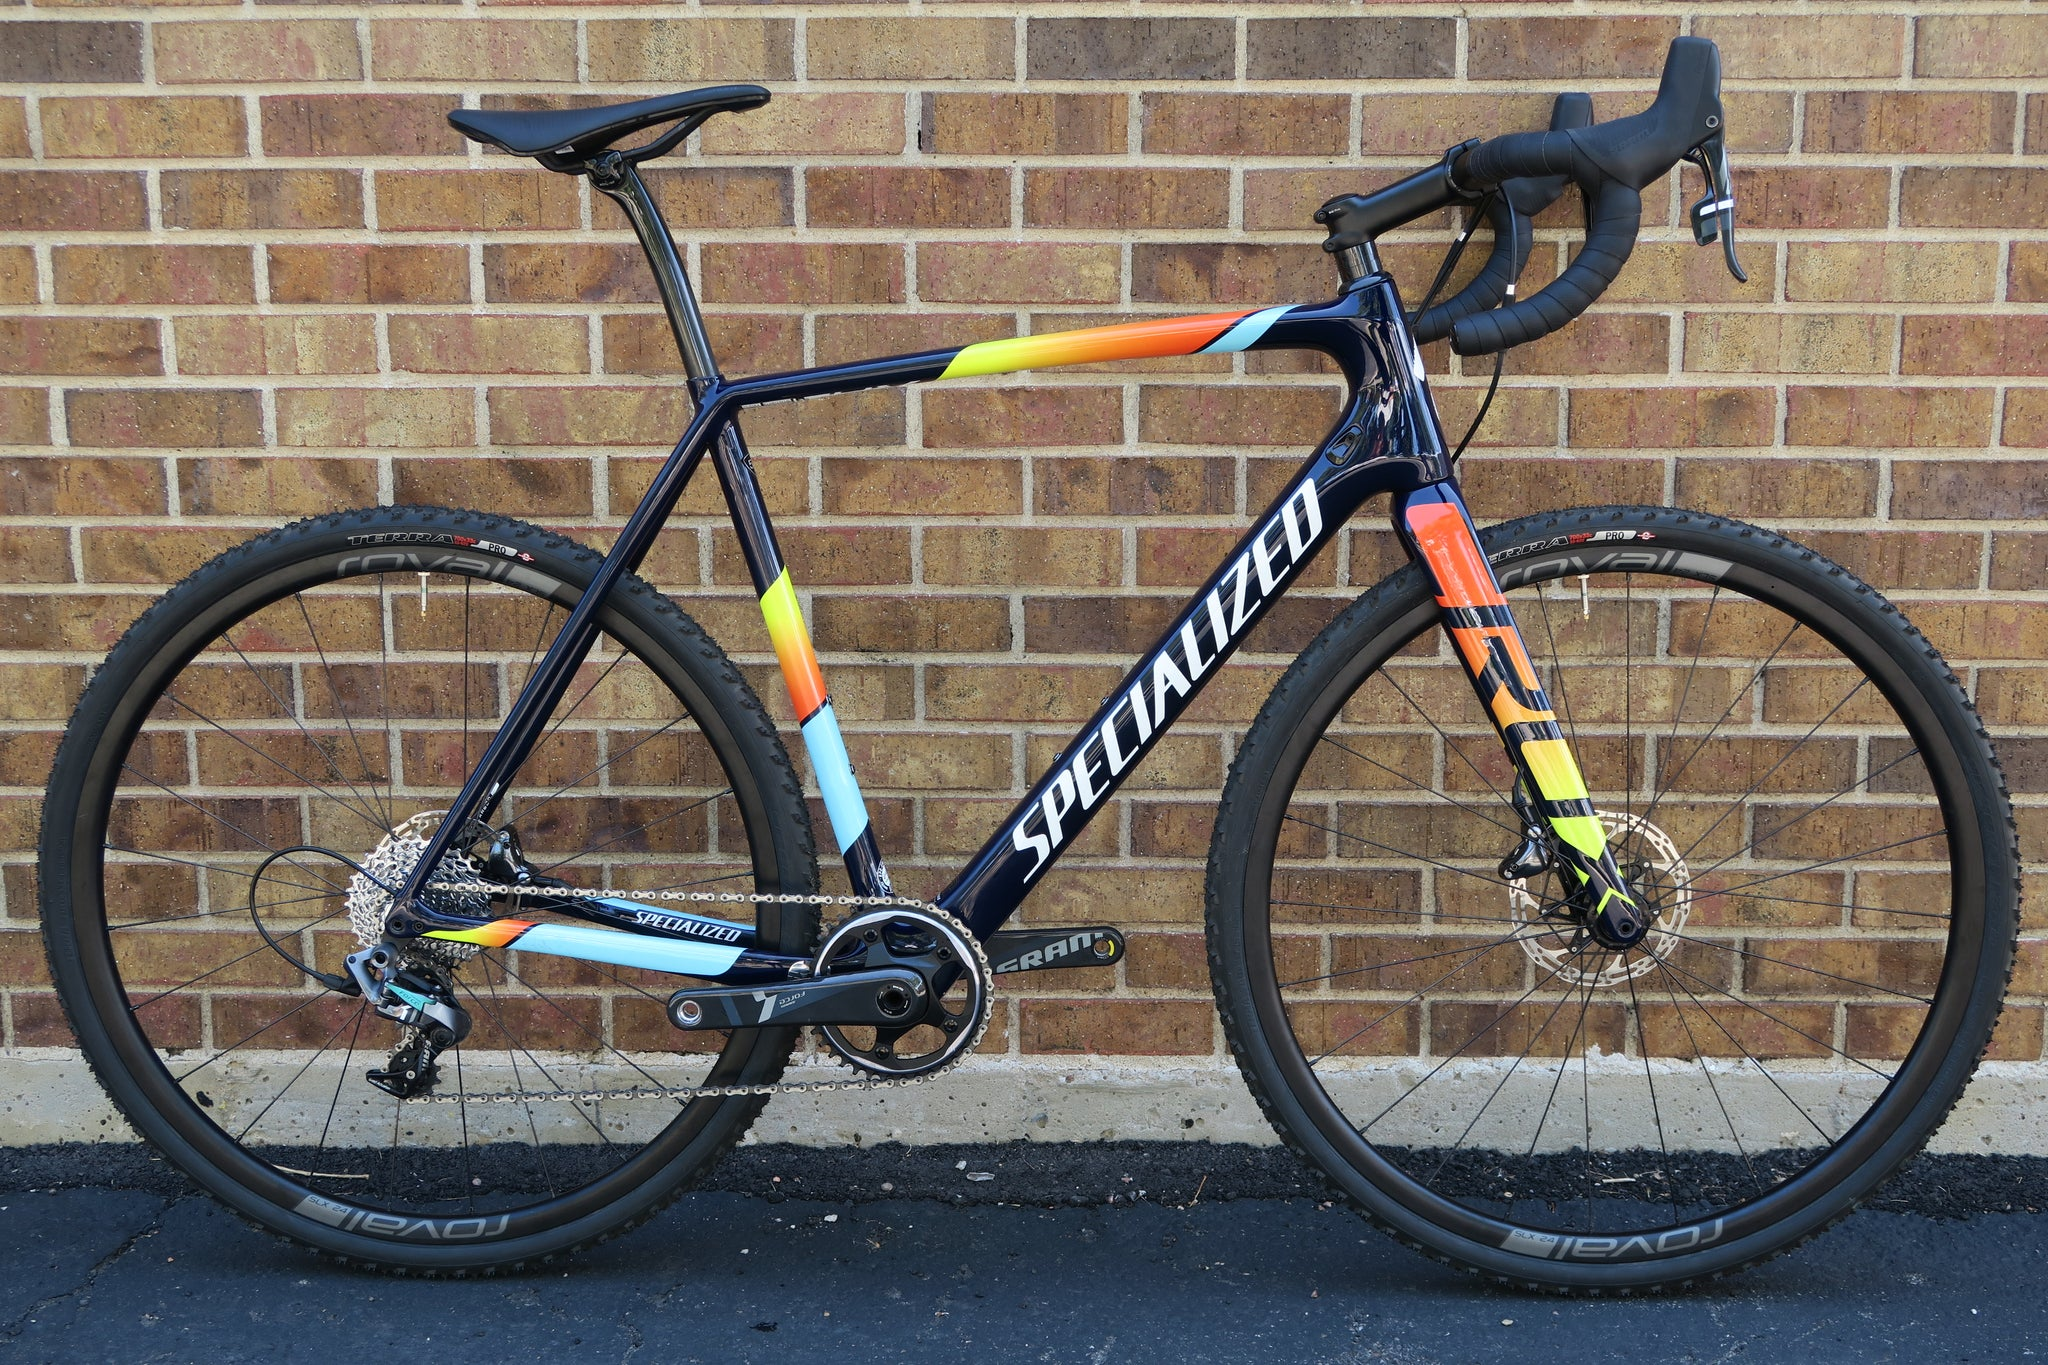 2018 SPECIALIZED CRUX EXPERT X1 CARBON